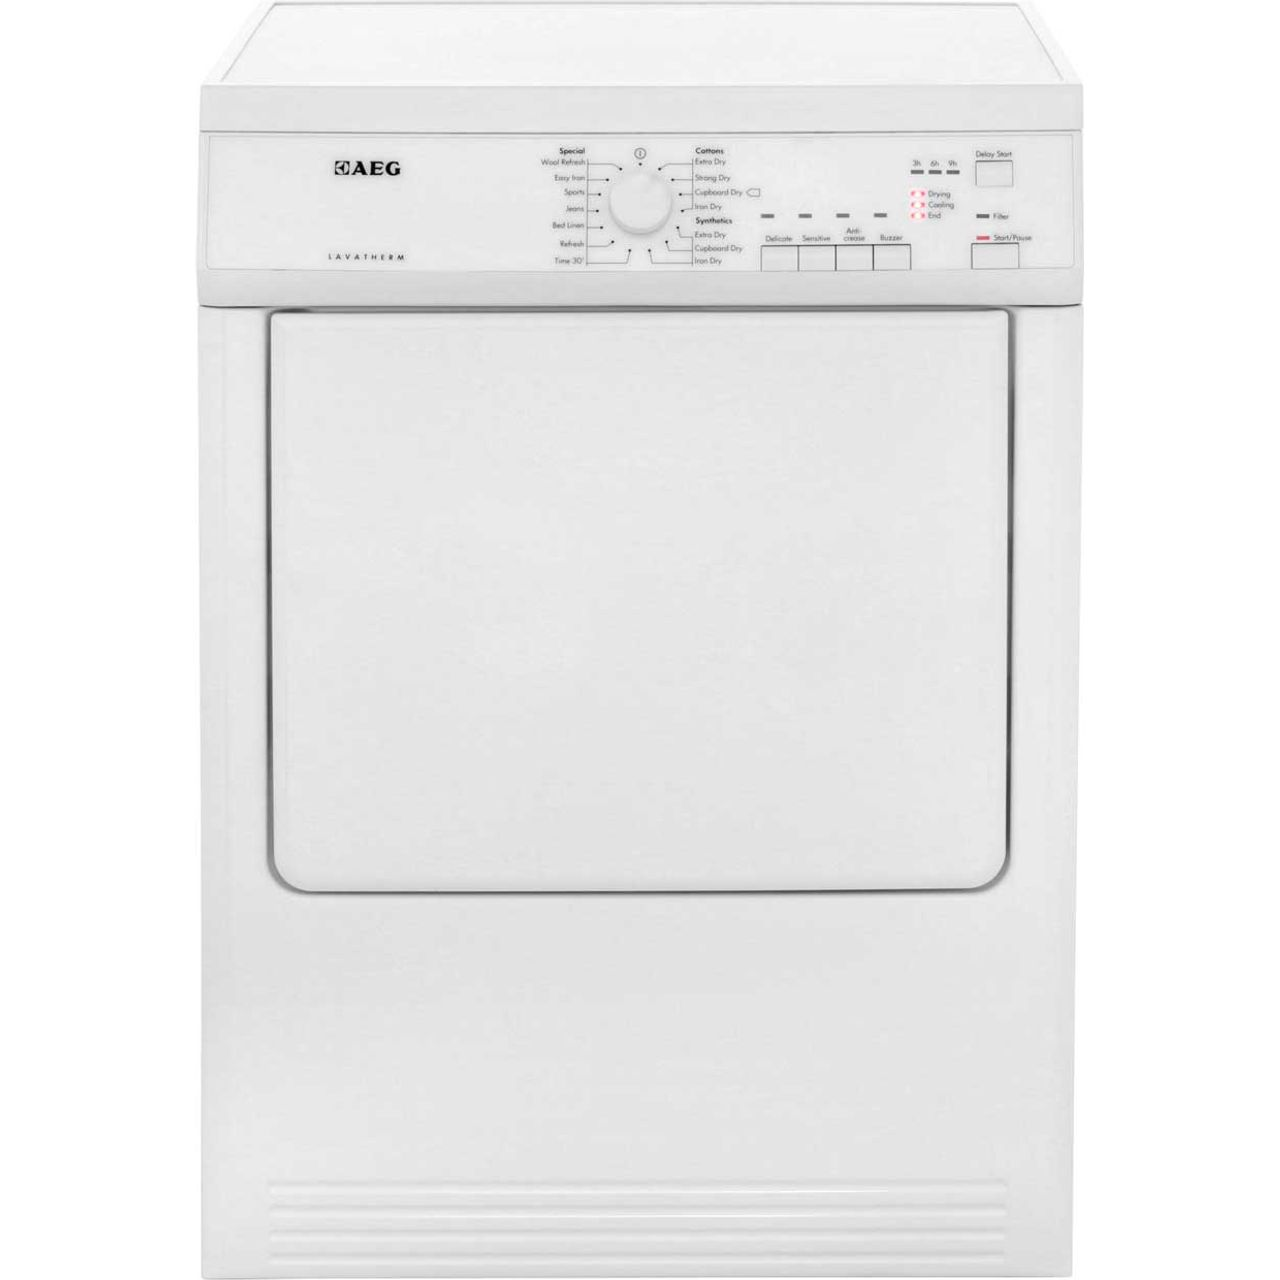 AEG 7Kg Vented Tumble Dryer - White - C Rated